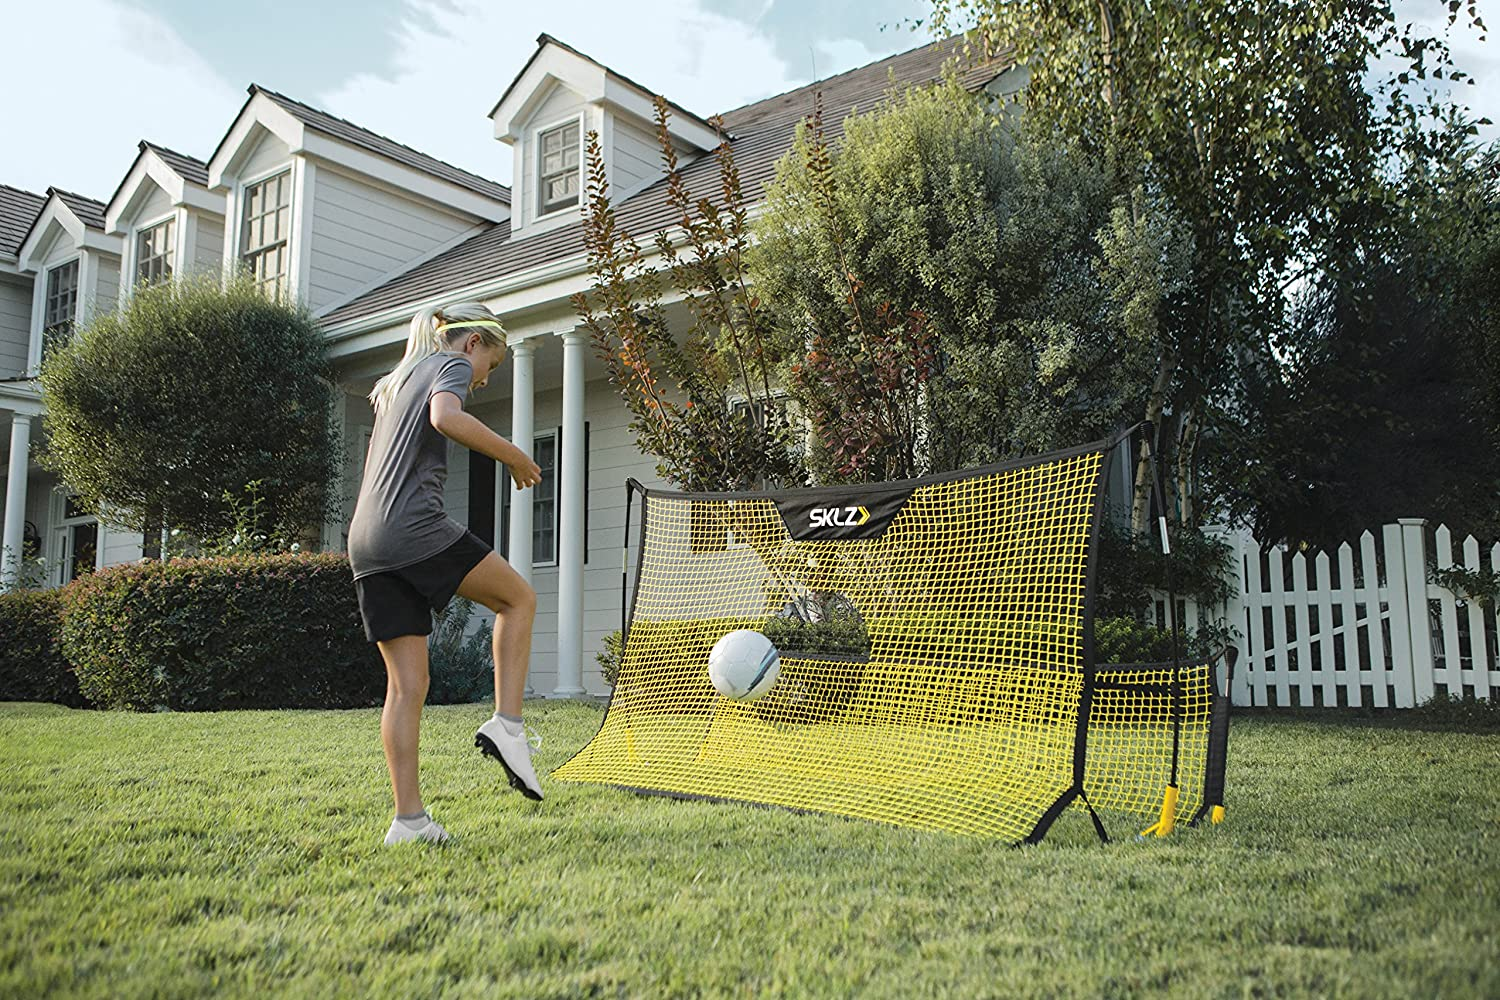 SKLZ Quickster Soccer Trainer Portable Soccer Rebounder Net for Volley, Passing, and Solo Training : Sports & Outdoors